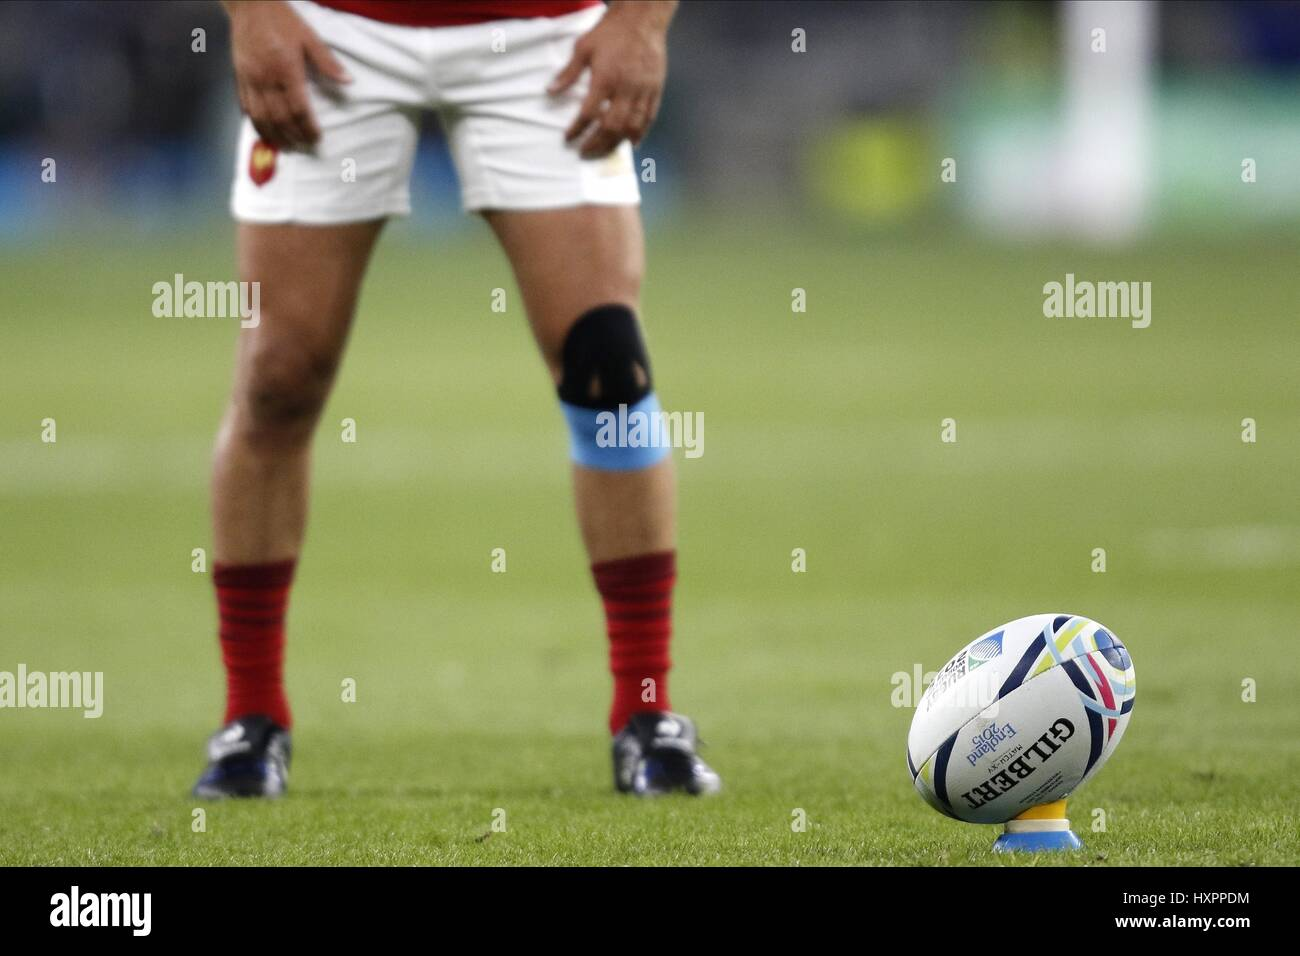 GILBERT RUGBY FOOTBALL RUGBY WORLD CUP 2015 RUGBY WORLD CUP 2015 TWICKENHAM LONDON ENGLAND 19 September 2015 - Stock Image